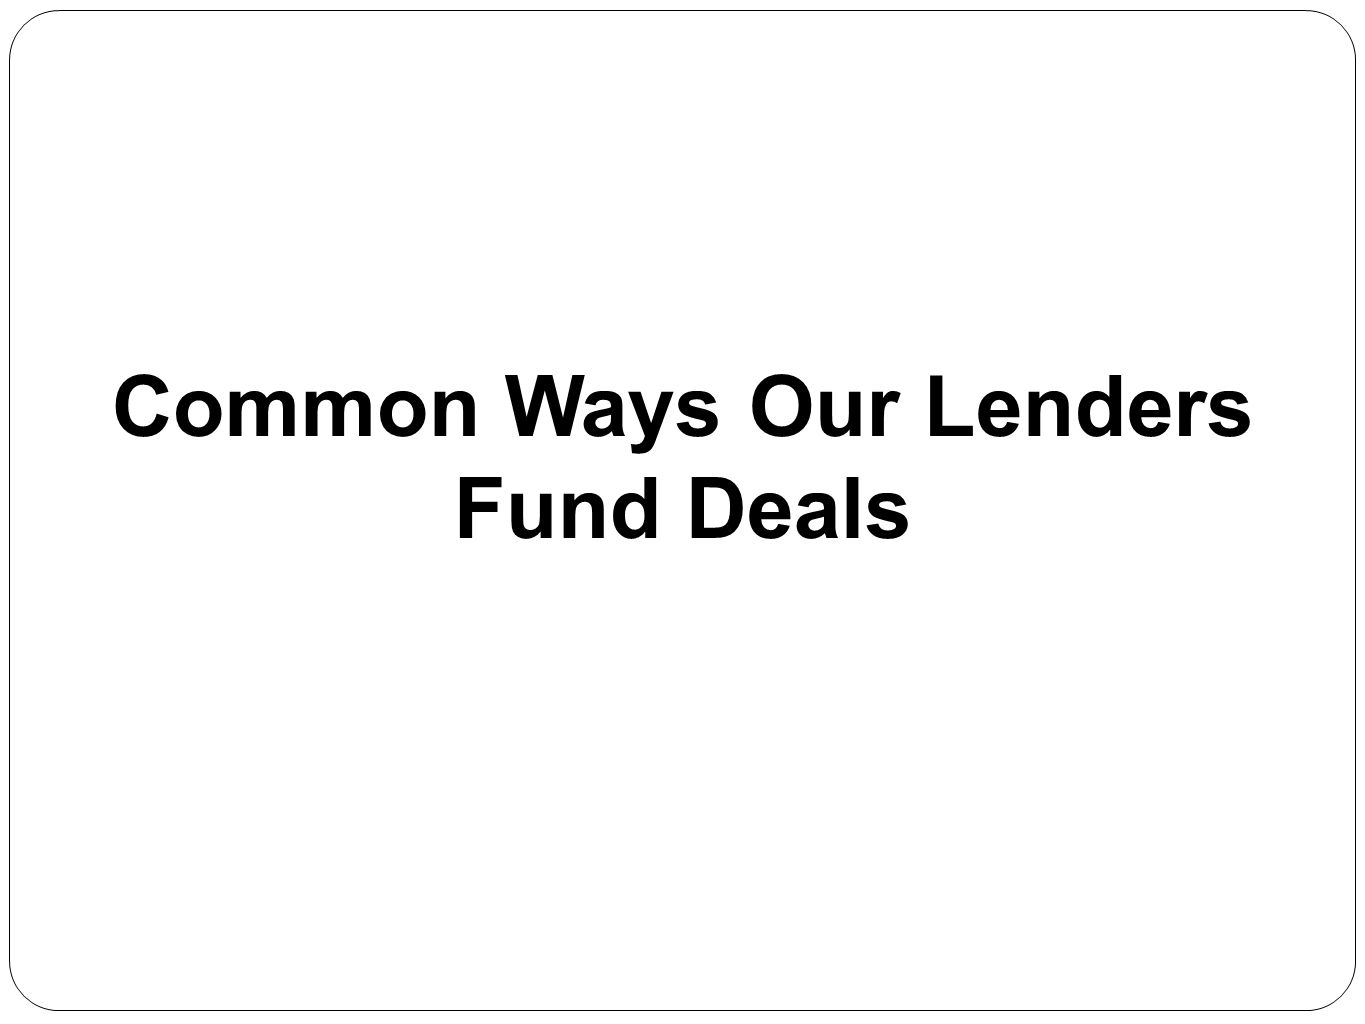 Common Ways Our Lenders Fund Deals